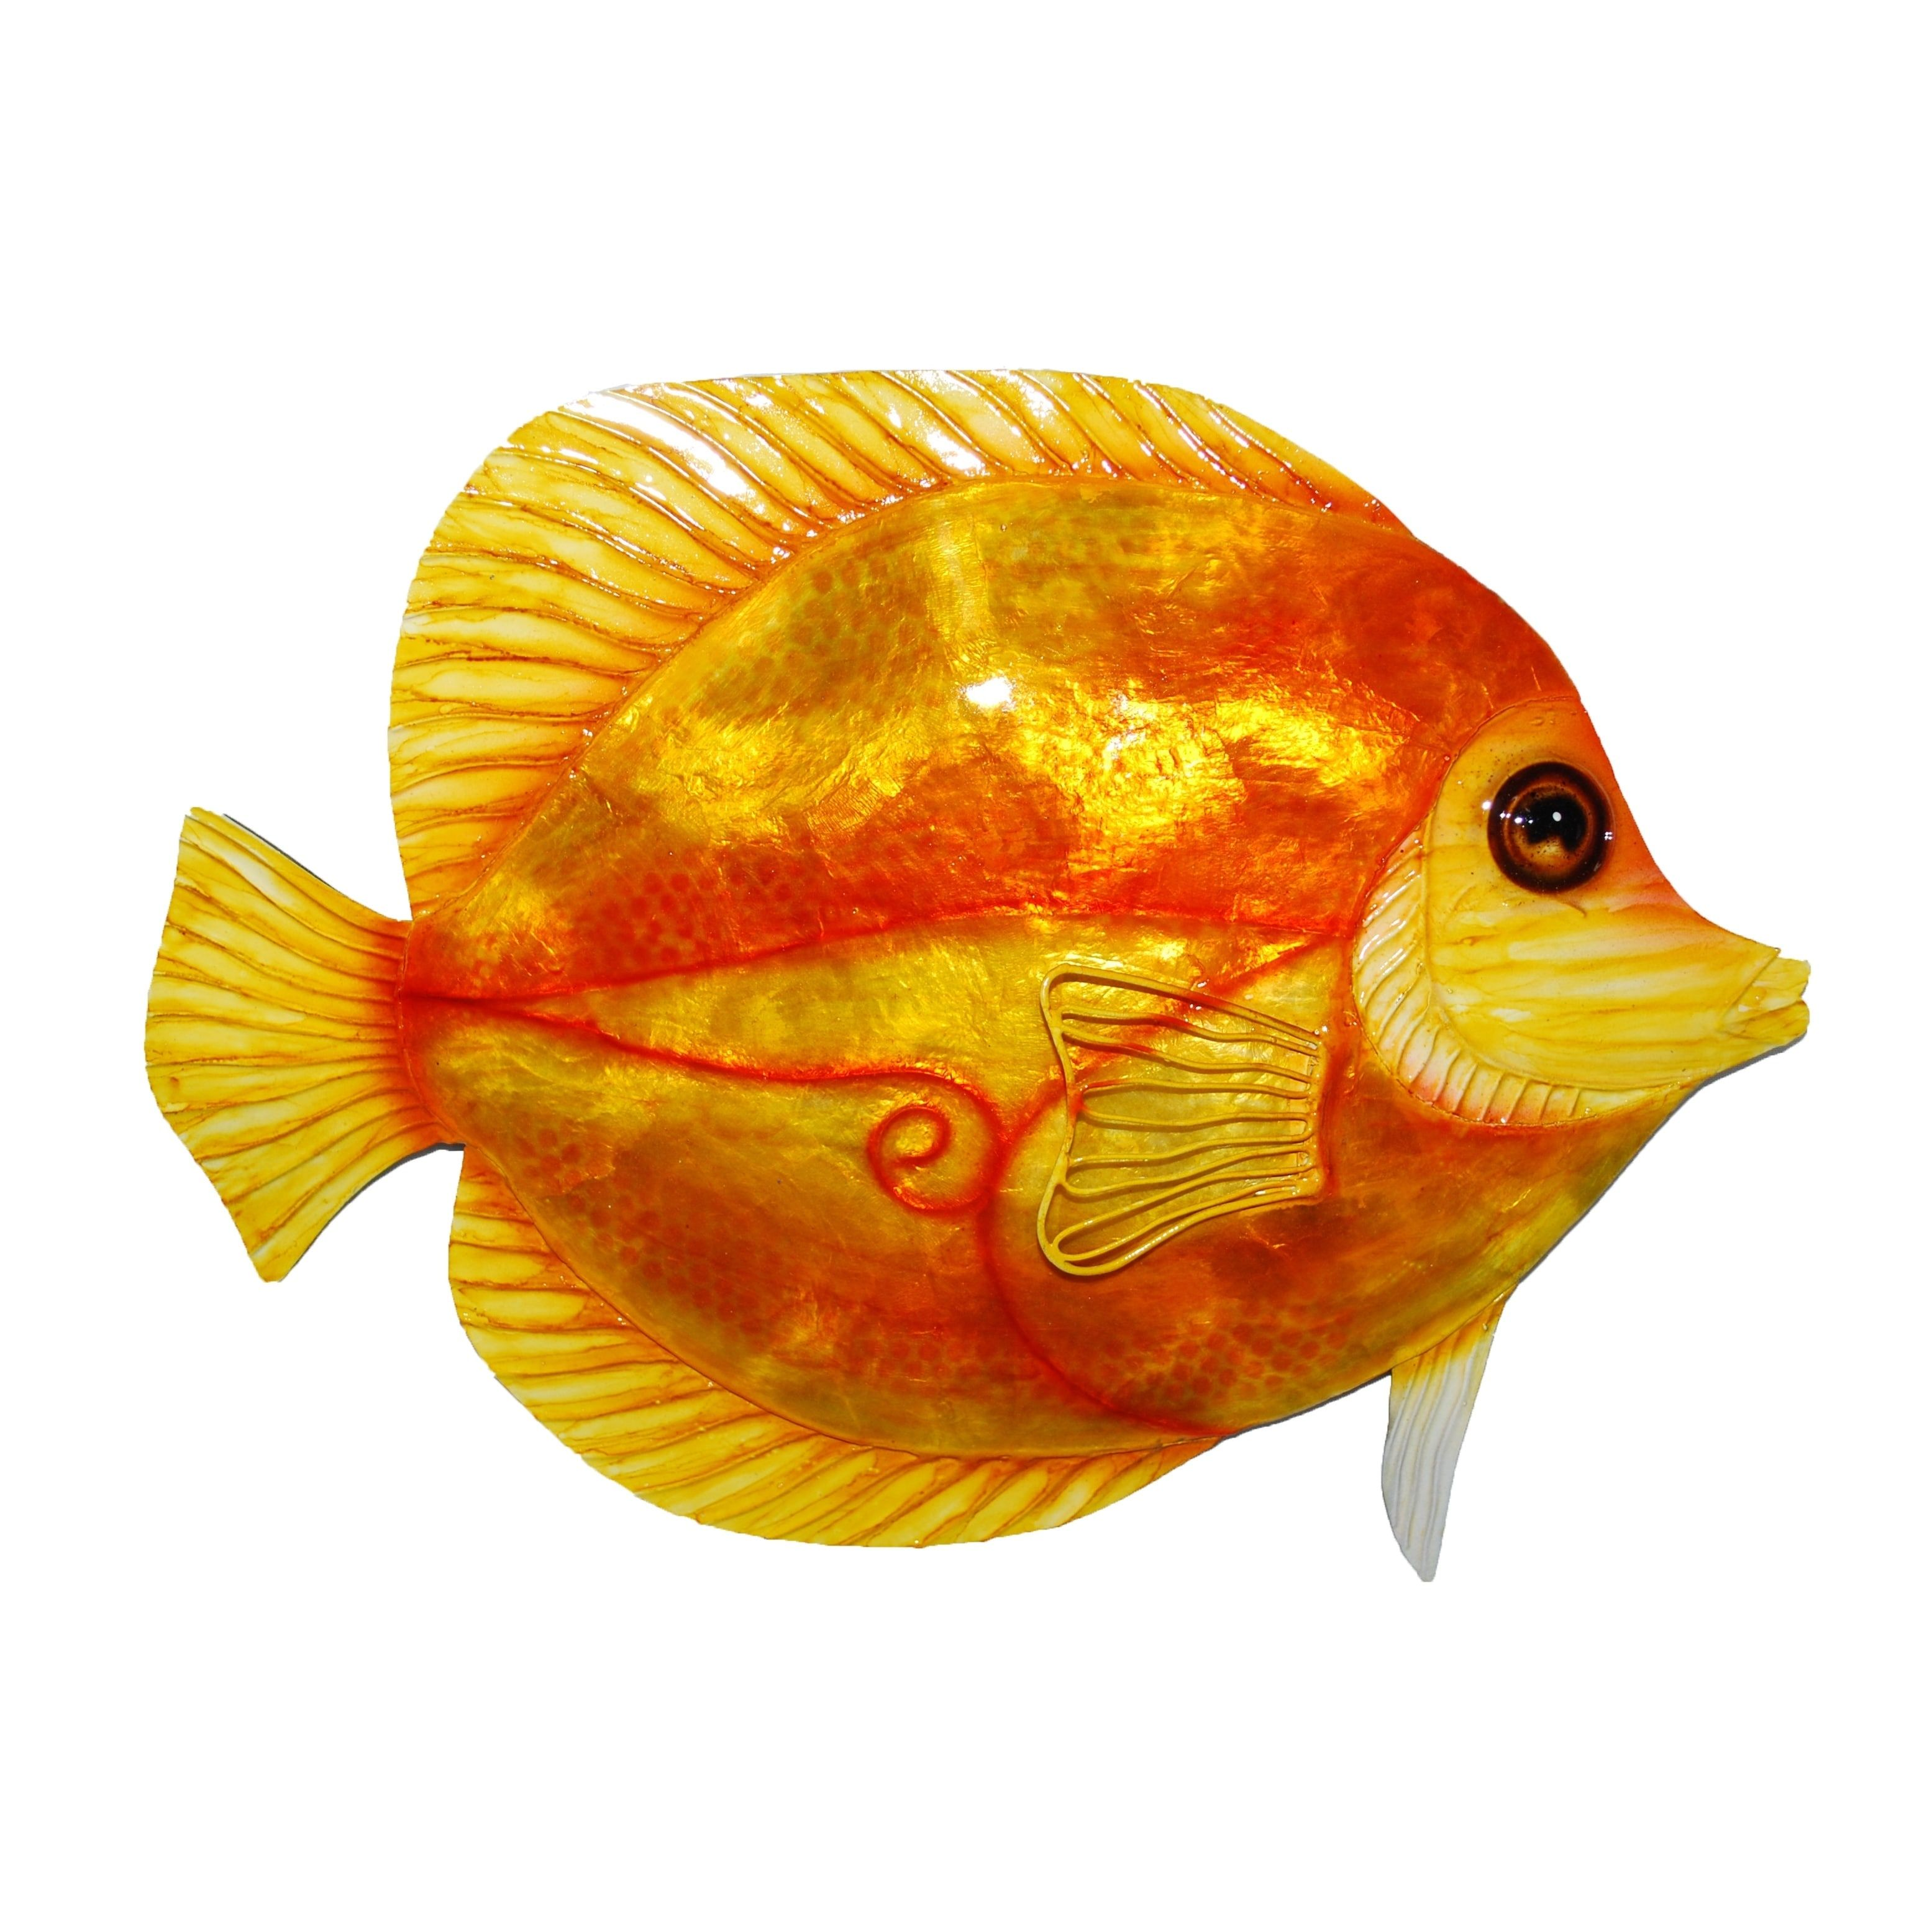 Stunning Fish Wall Art Metal Images - The Wall Art Decorations ...